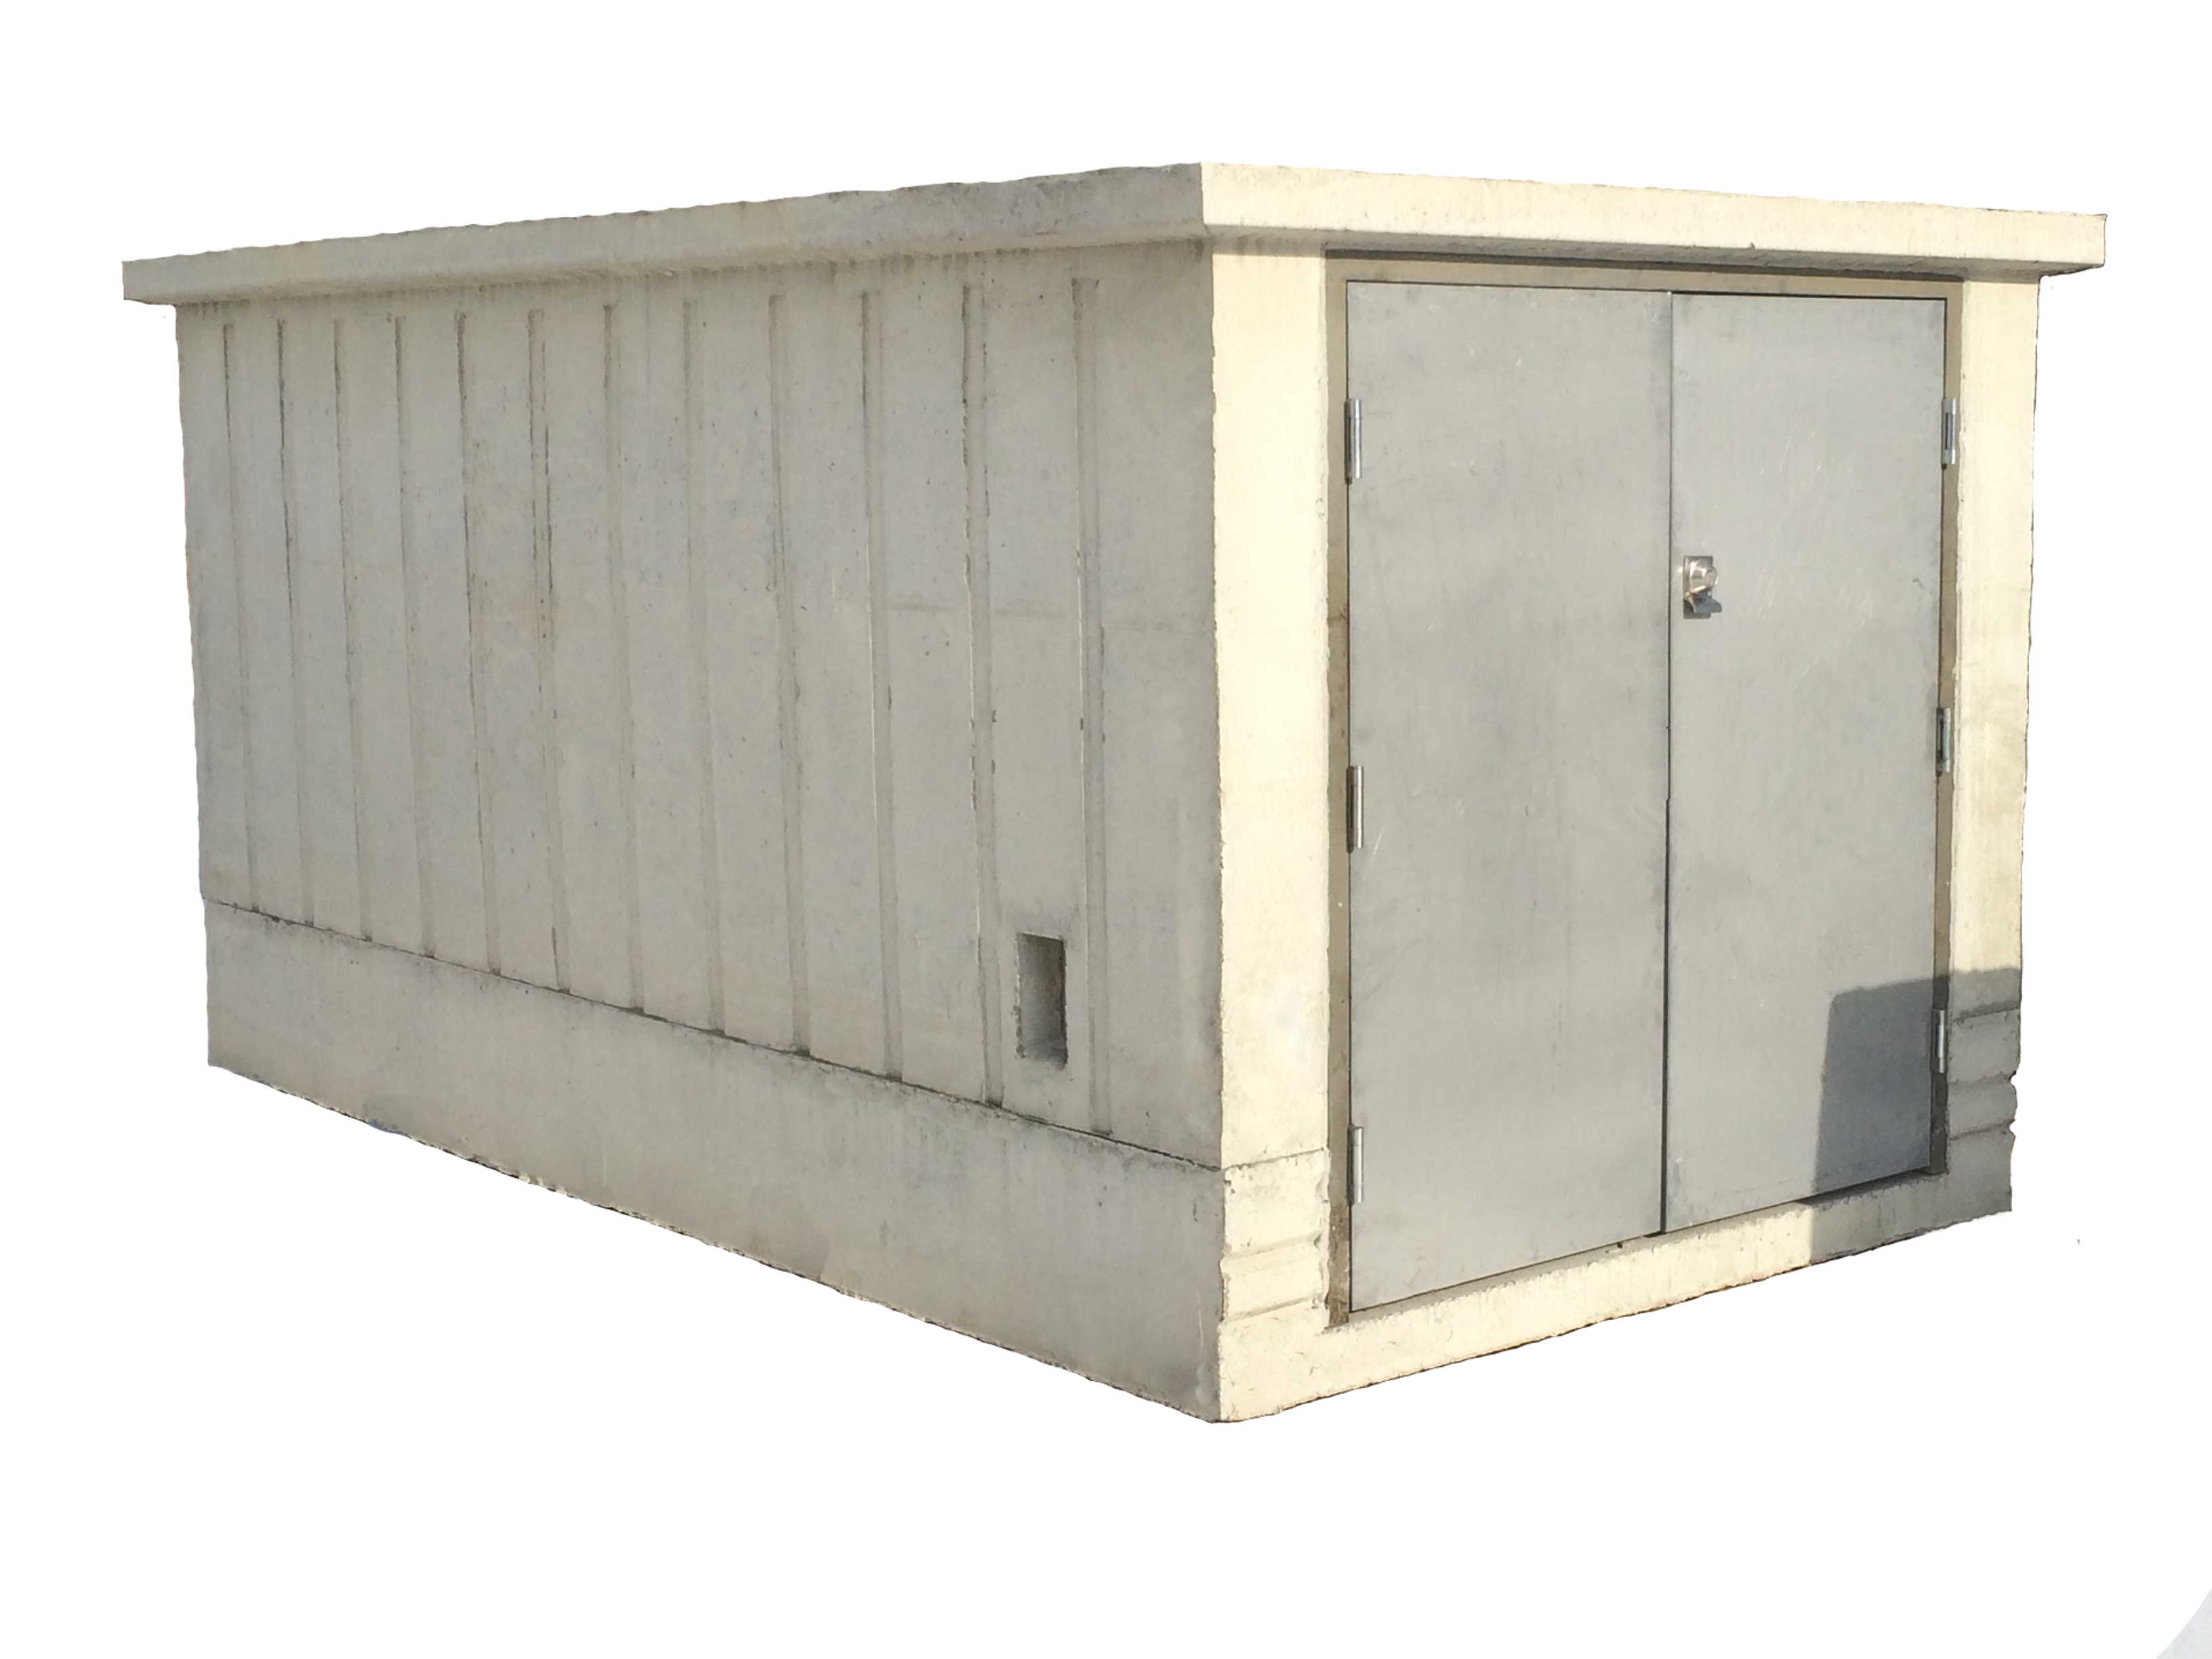 Model 90 - Precast Concrete Utility/Storage Unit